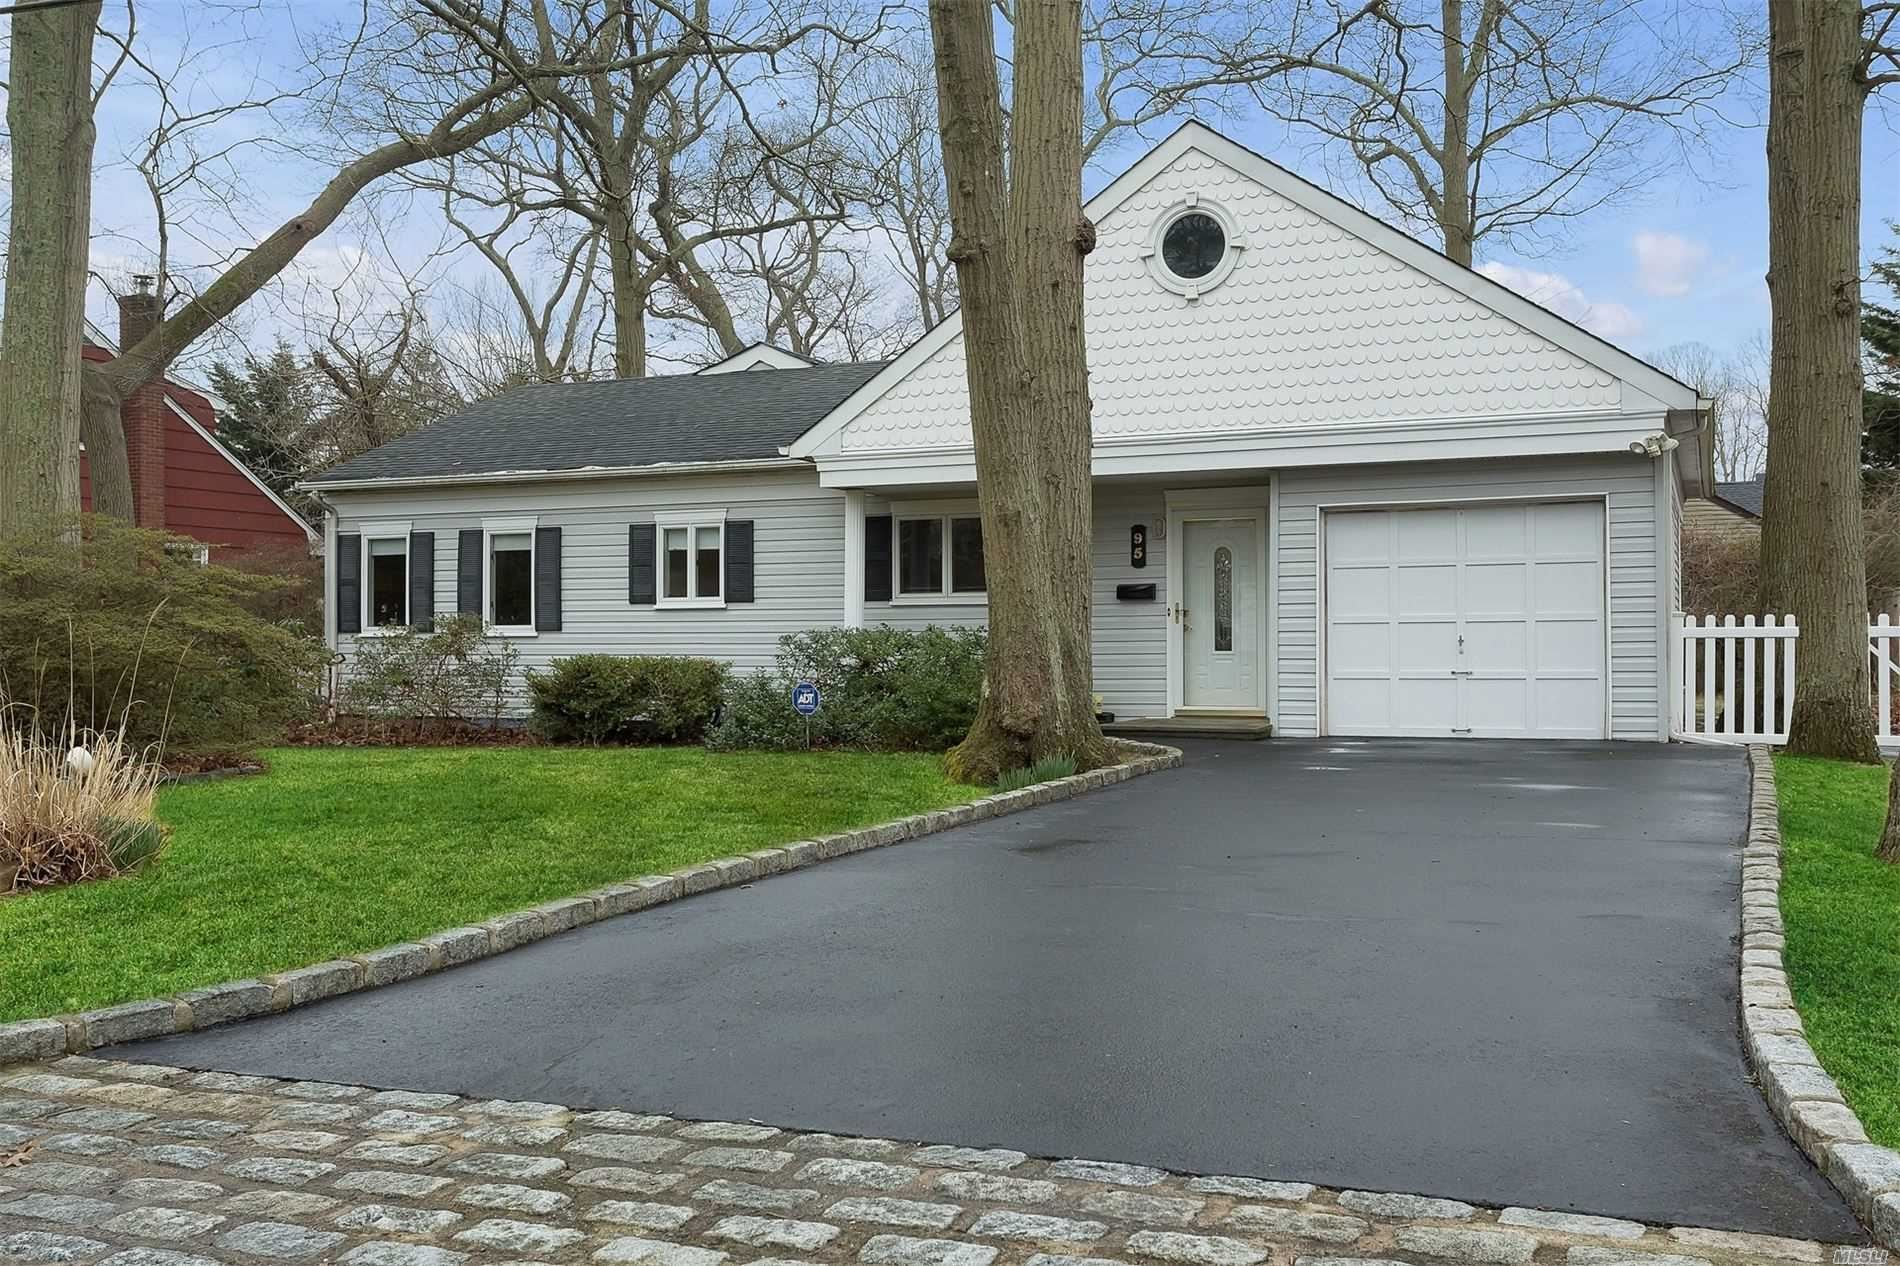 95 Mohawk Drive, Brightwaters, NY 11718 - MLS#: 3209097